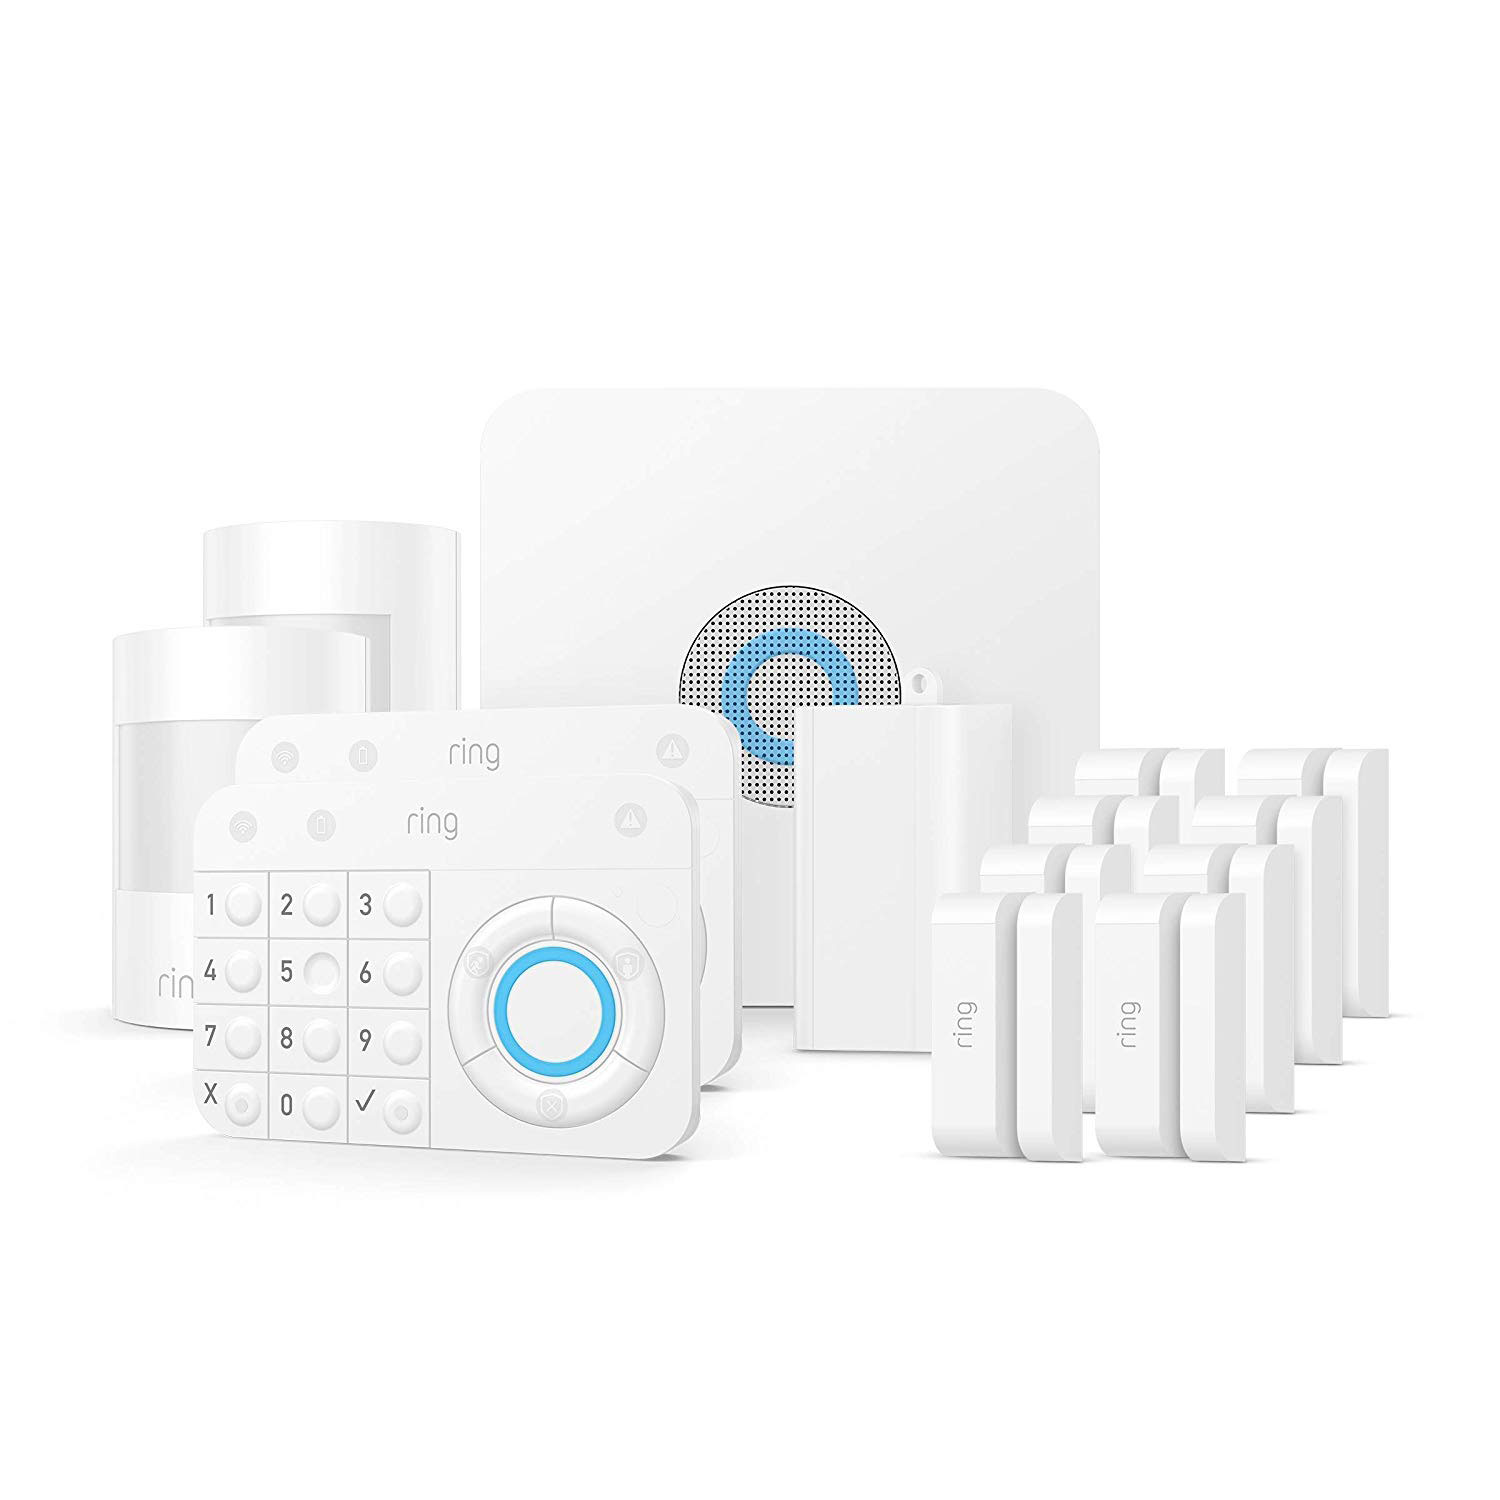 New cool smart home gadgets - Ring Alarm